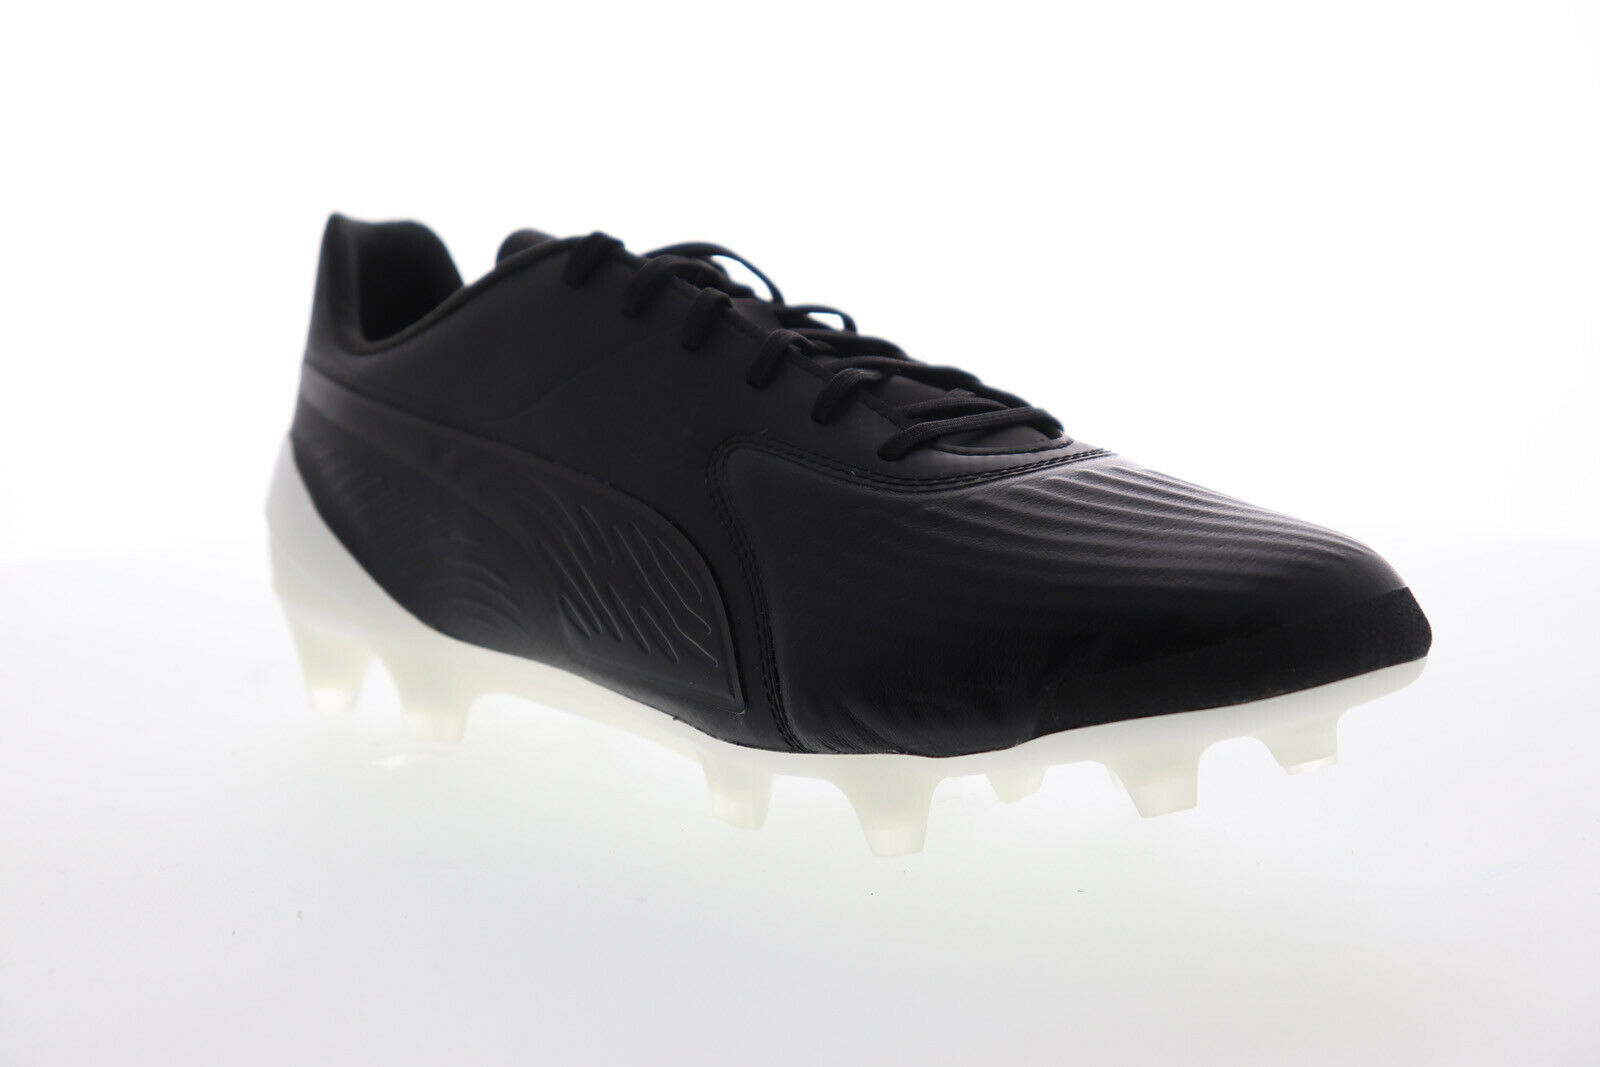 Puma One 19.1 Cc FG AG 10548202 Mens Black Low Top Athletic Soccer Cleats Shoes